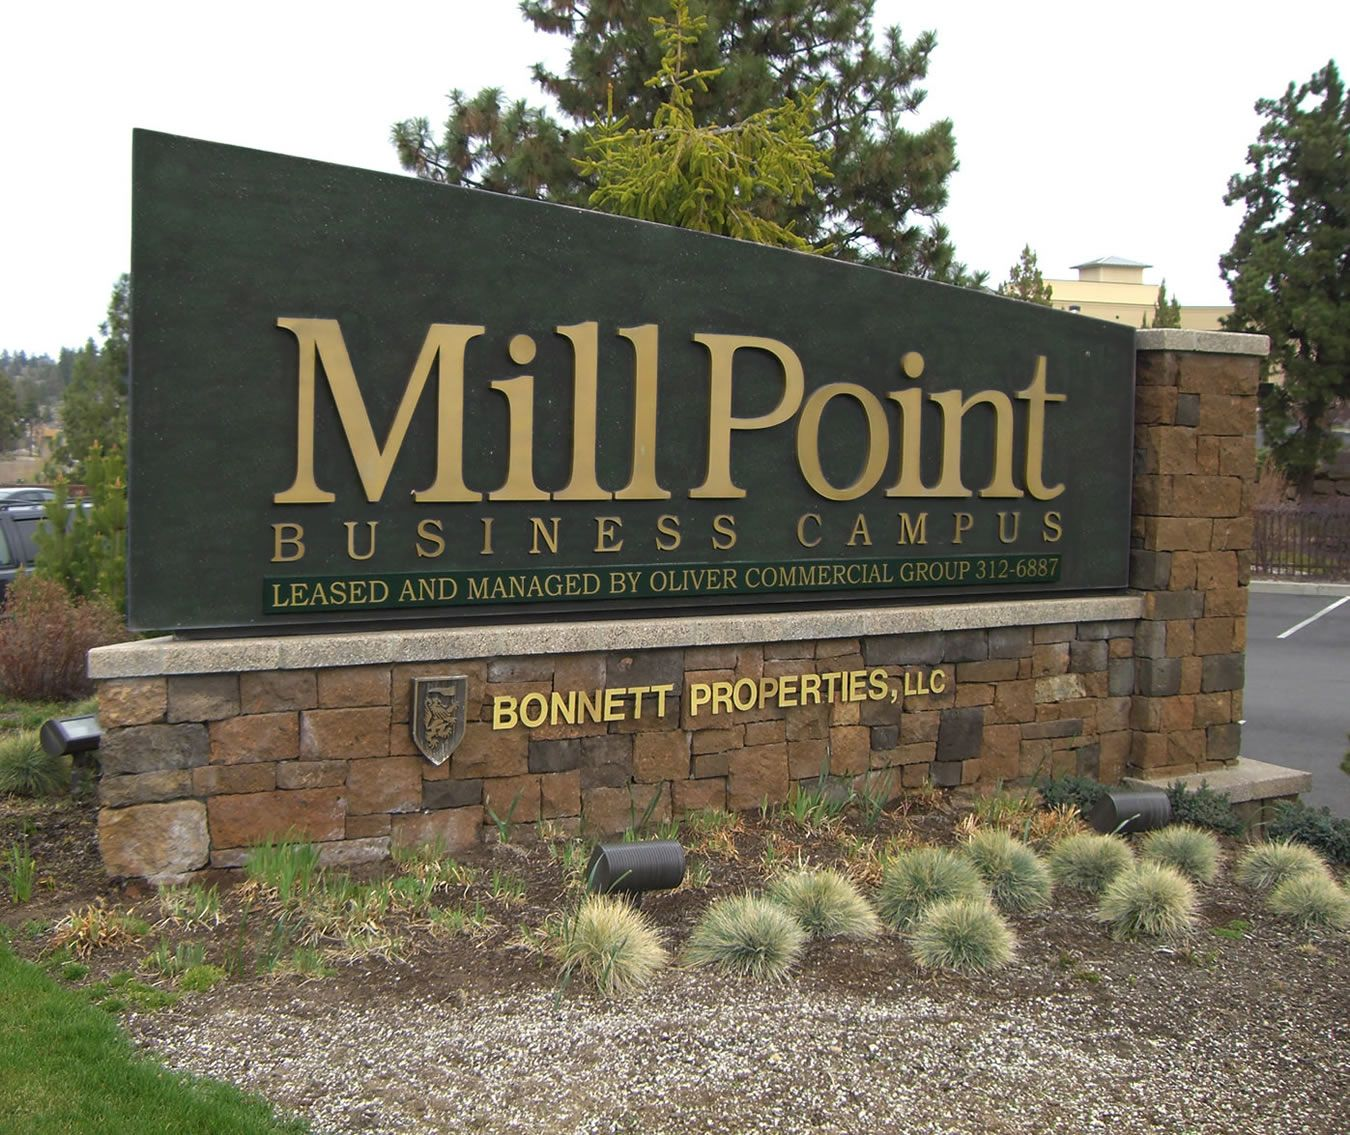 Carlson Sign Company Bend Oregon - Freestanding Signs Signage Monument